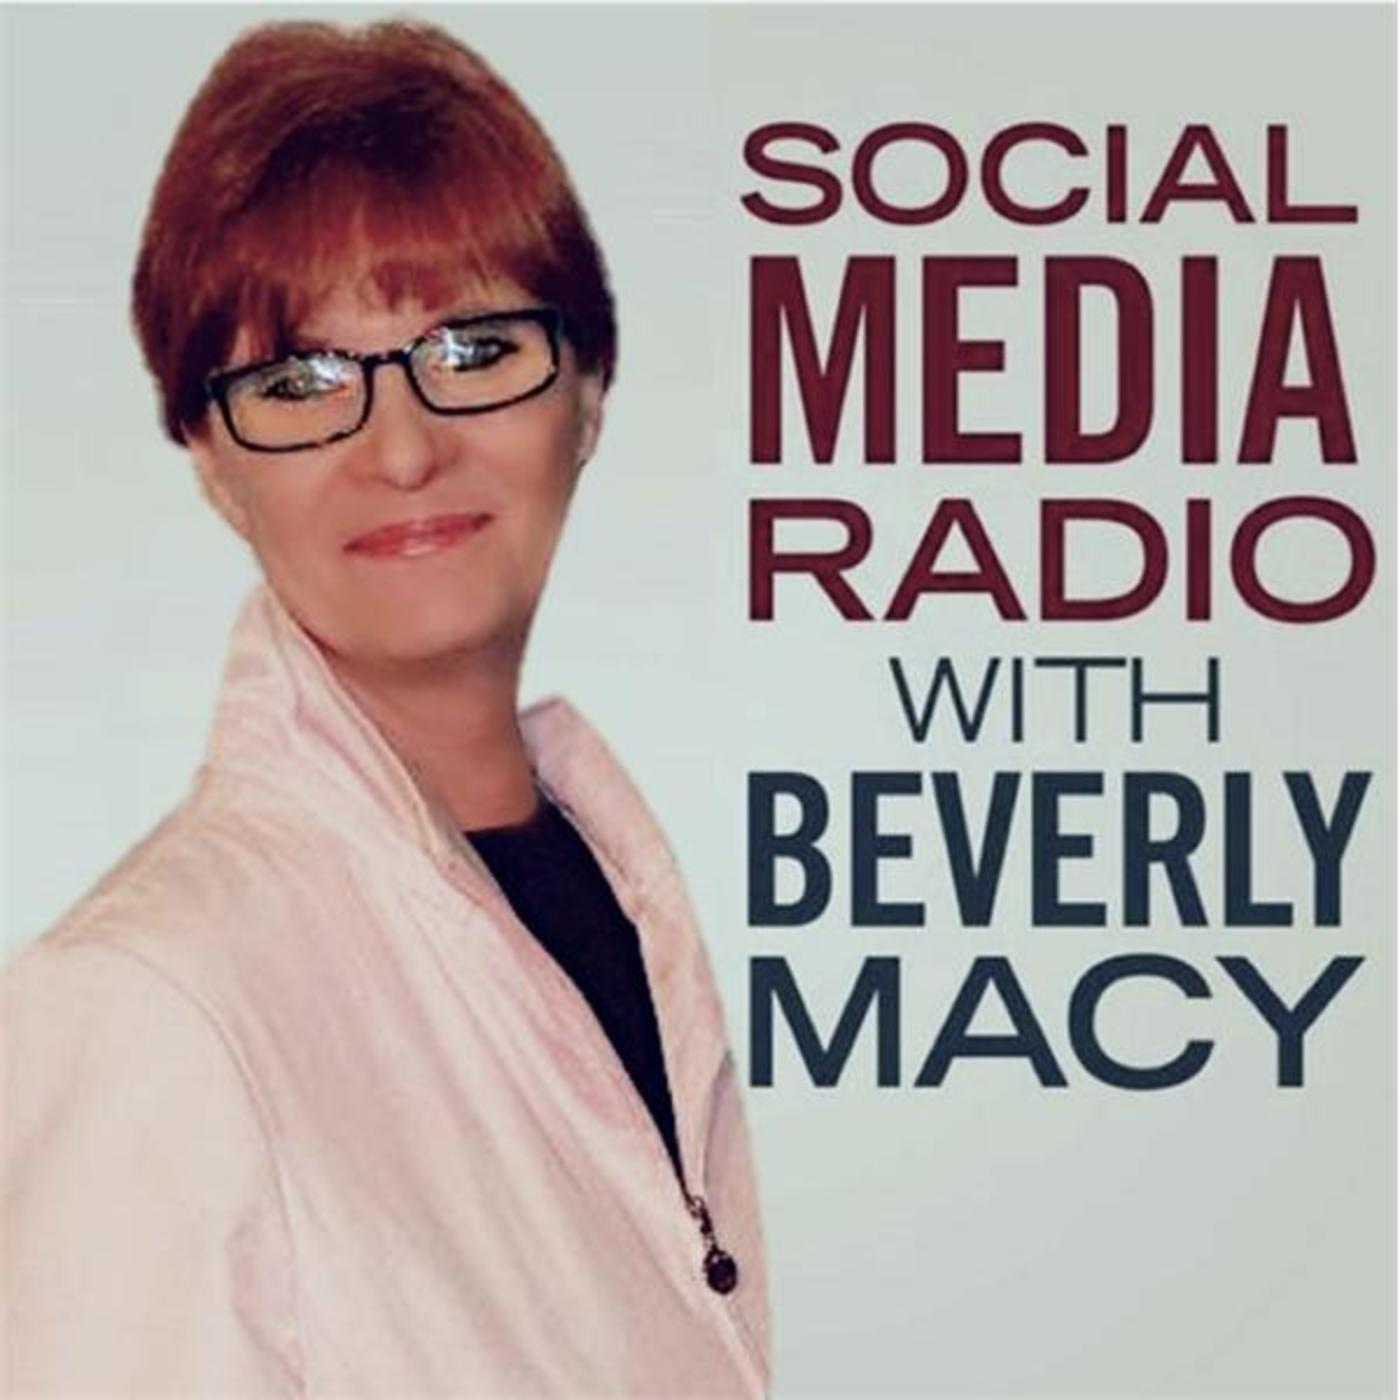 Social Media Radio with Beverly Macy